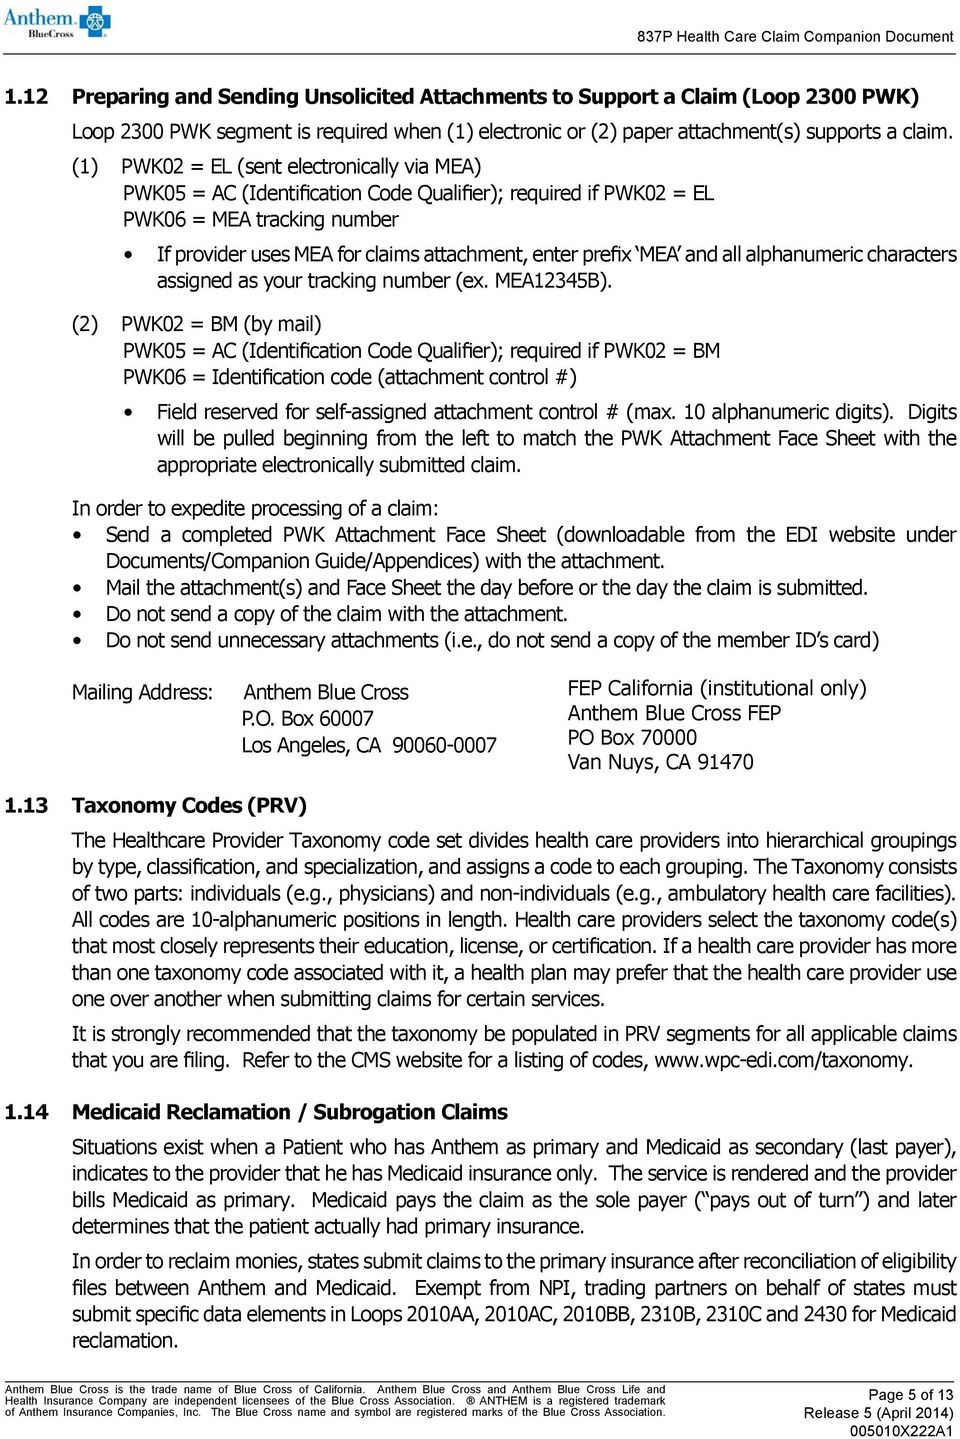 837 Professional Health Care Claim  Section 1 837P